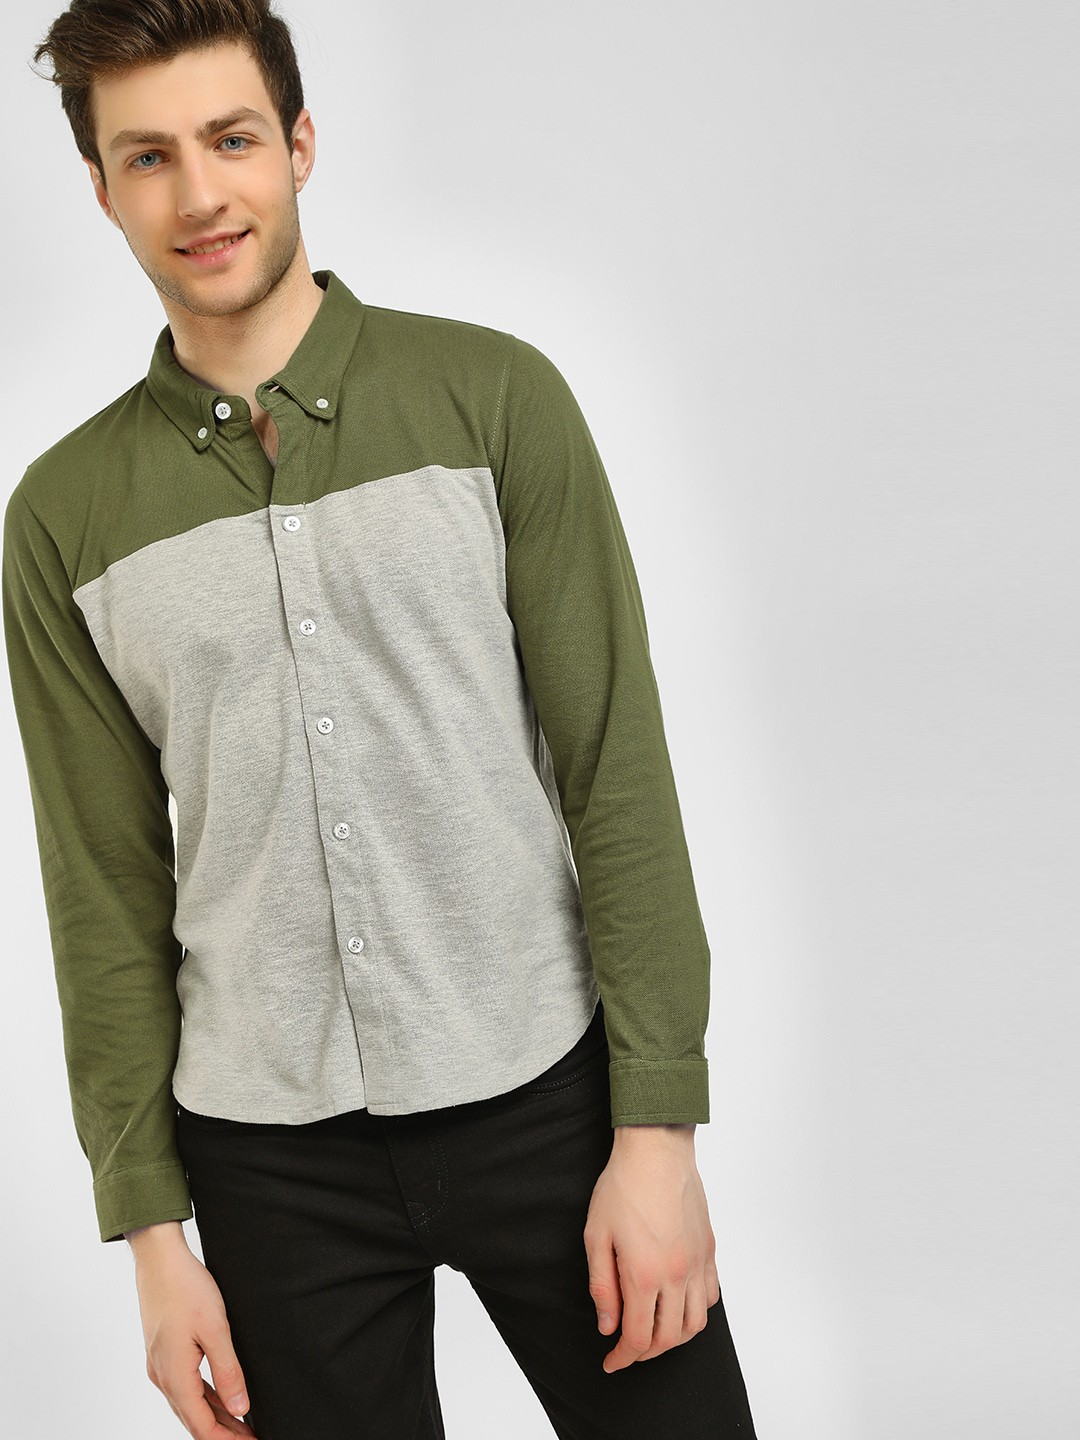 Garcon Olive Cut And Sew Casual Shirt 1